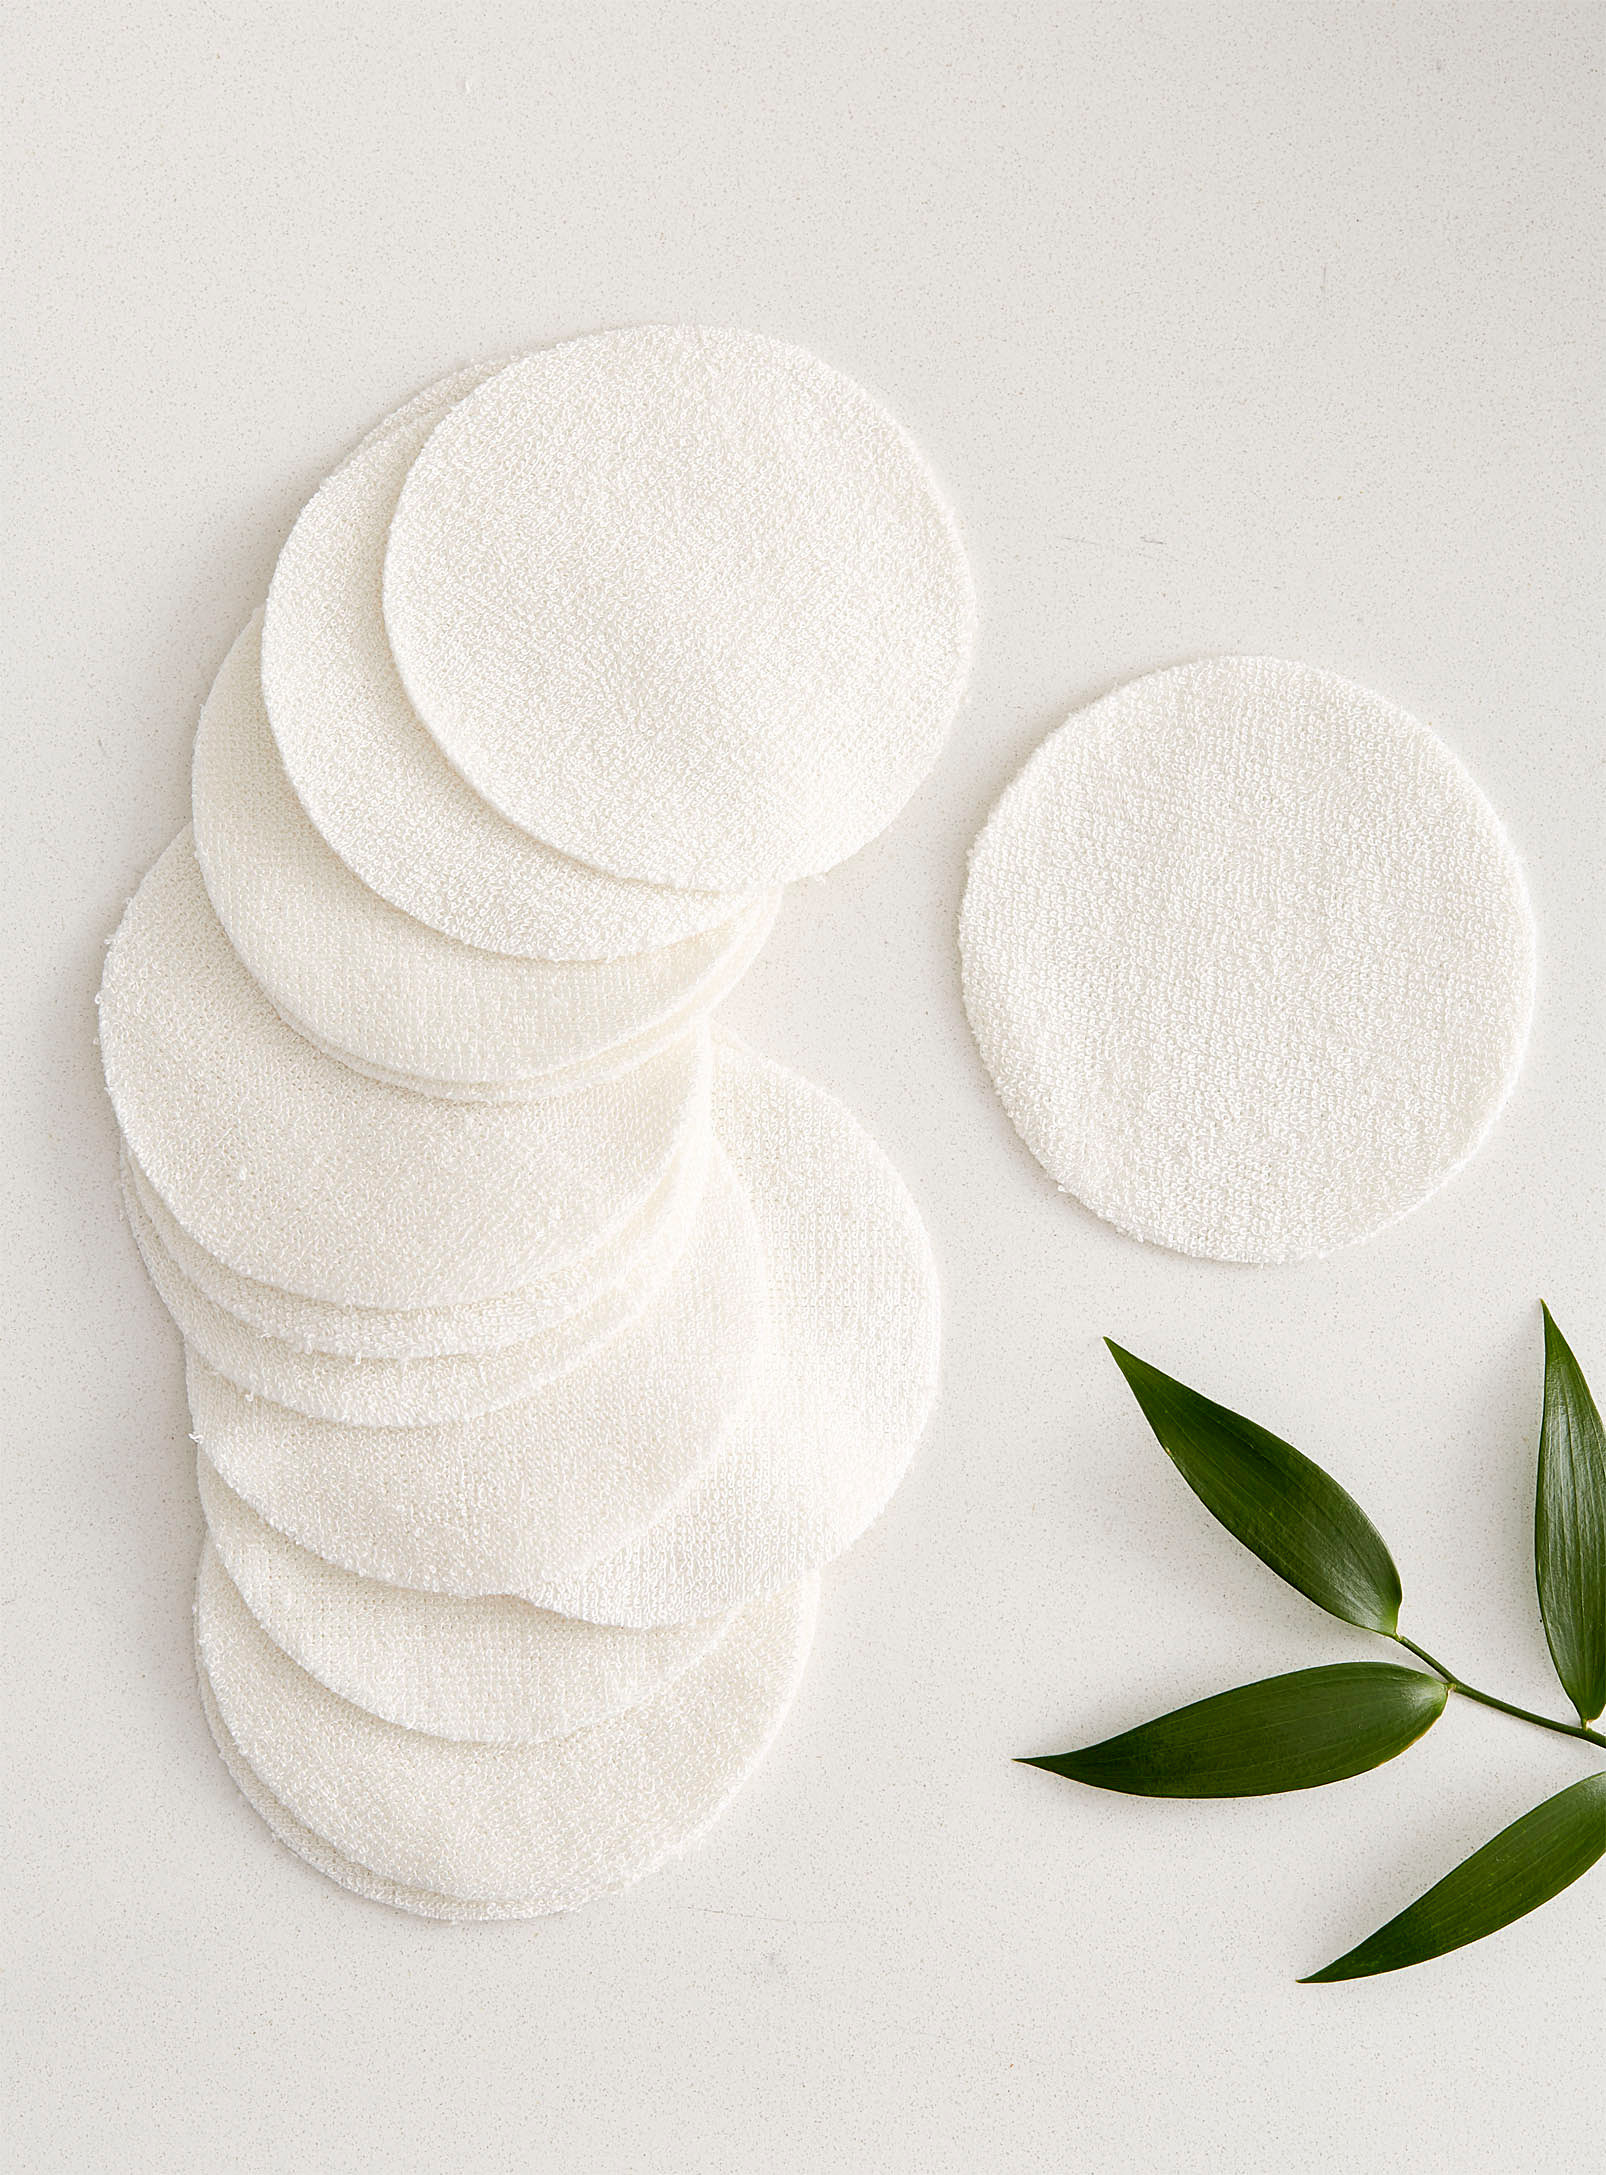 the cotton pads